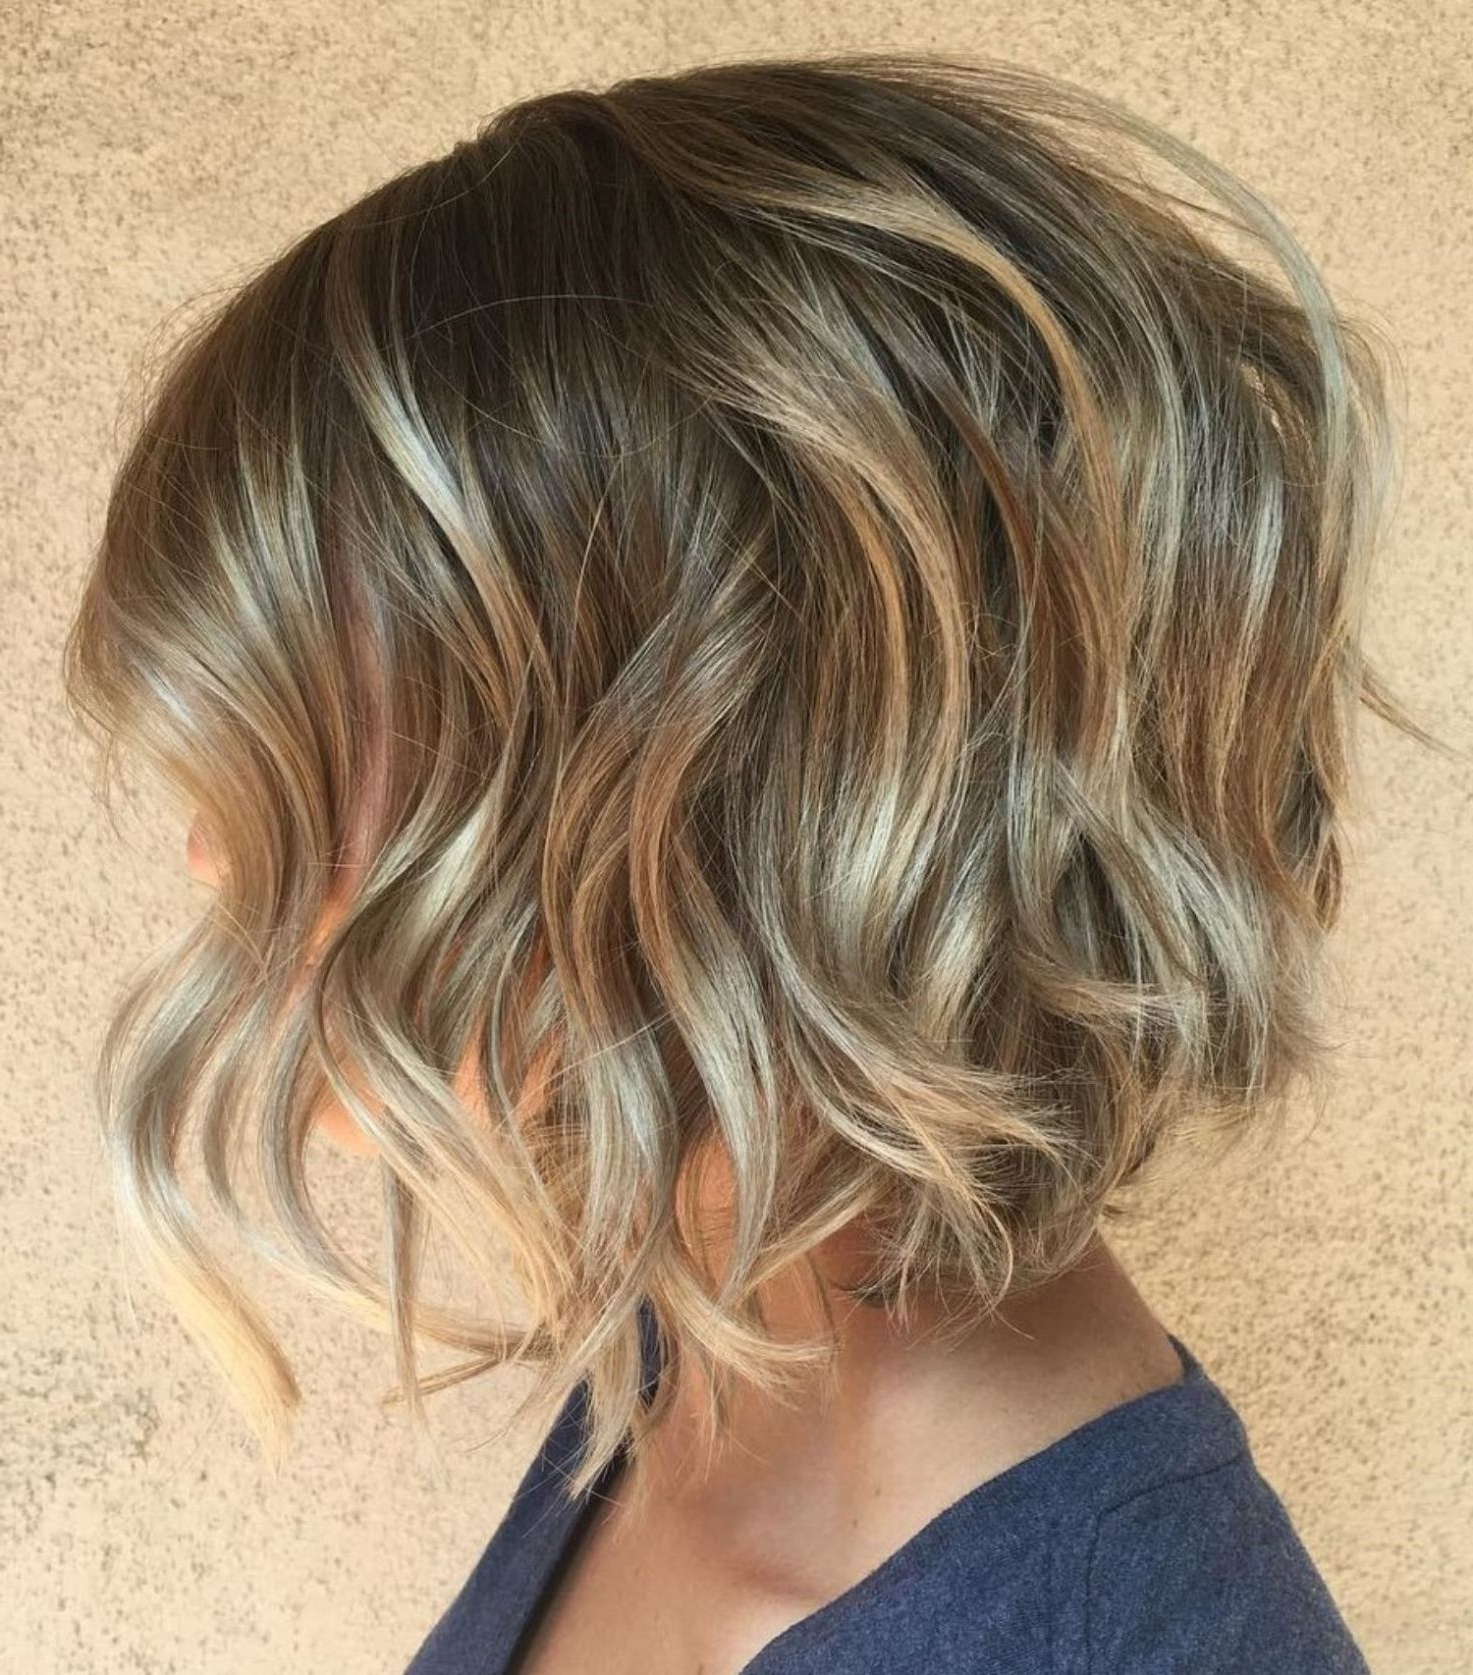 60 Best Short Bob Haircuts And Hairstyles For Women In 2019 Inside Feminine Wavy Golden Blonde Bob Hairstyles (View 12 of 20)